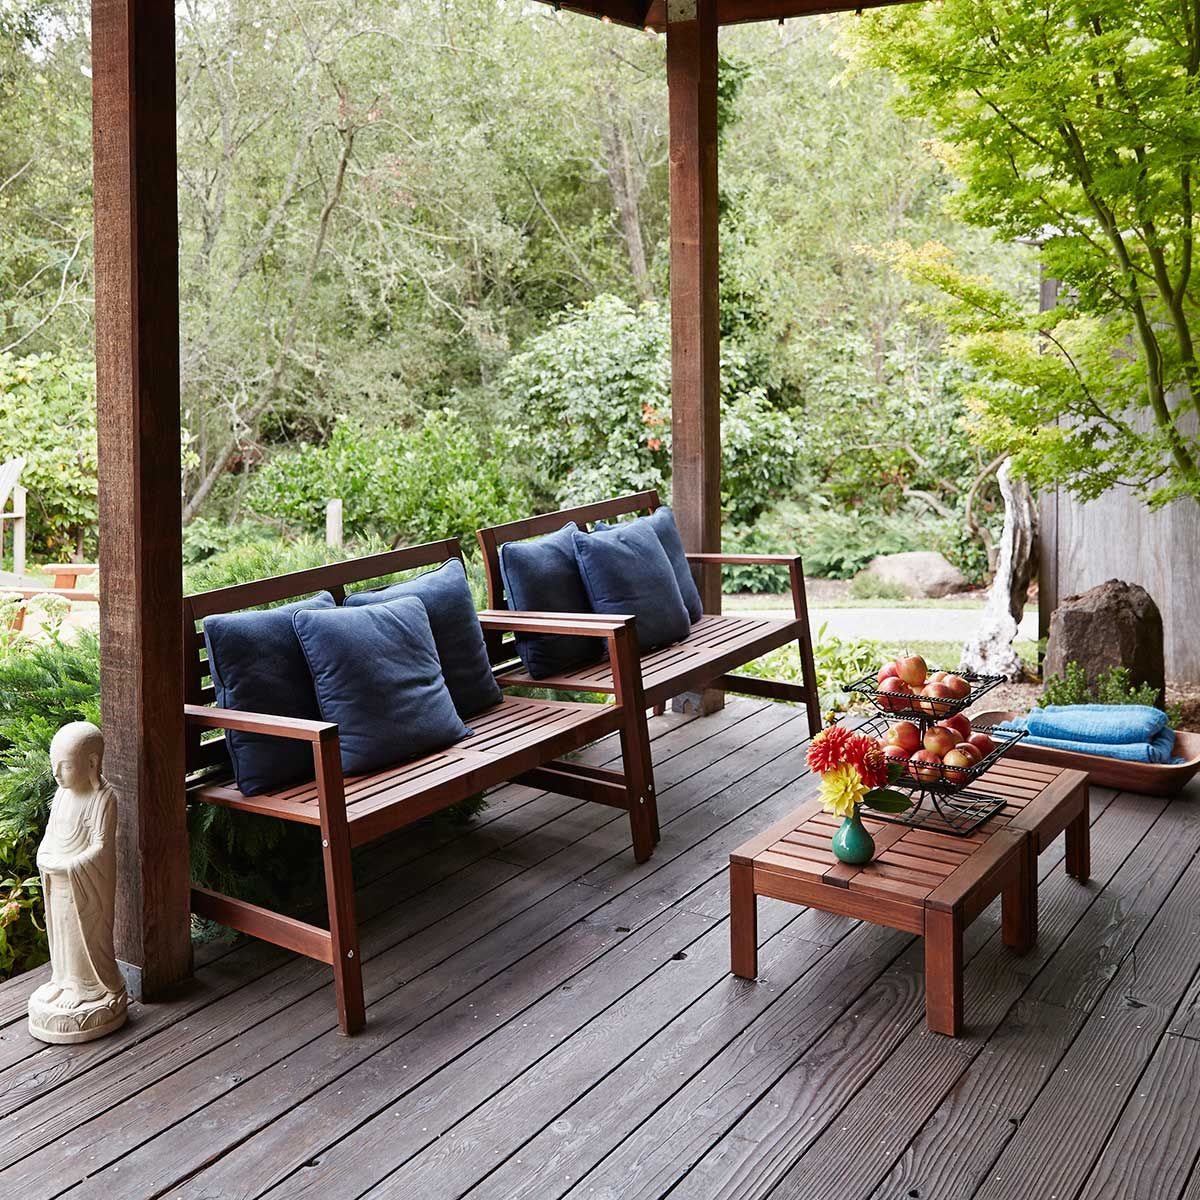 How To Clean The Patio Patio Cleaning Tips